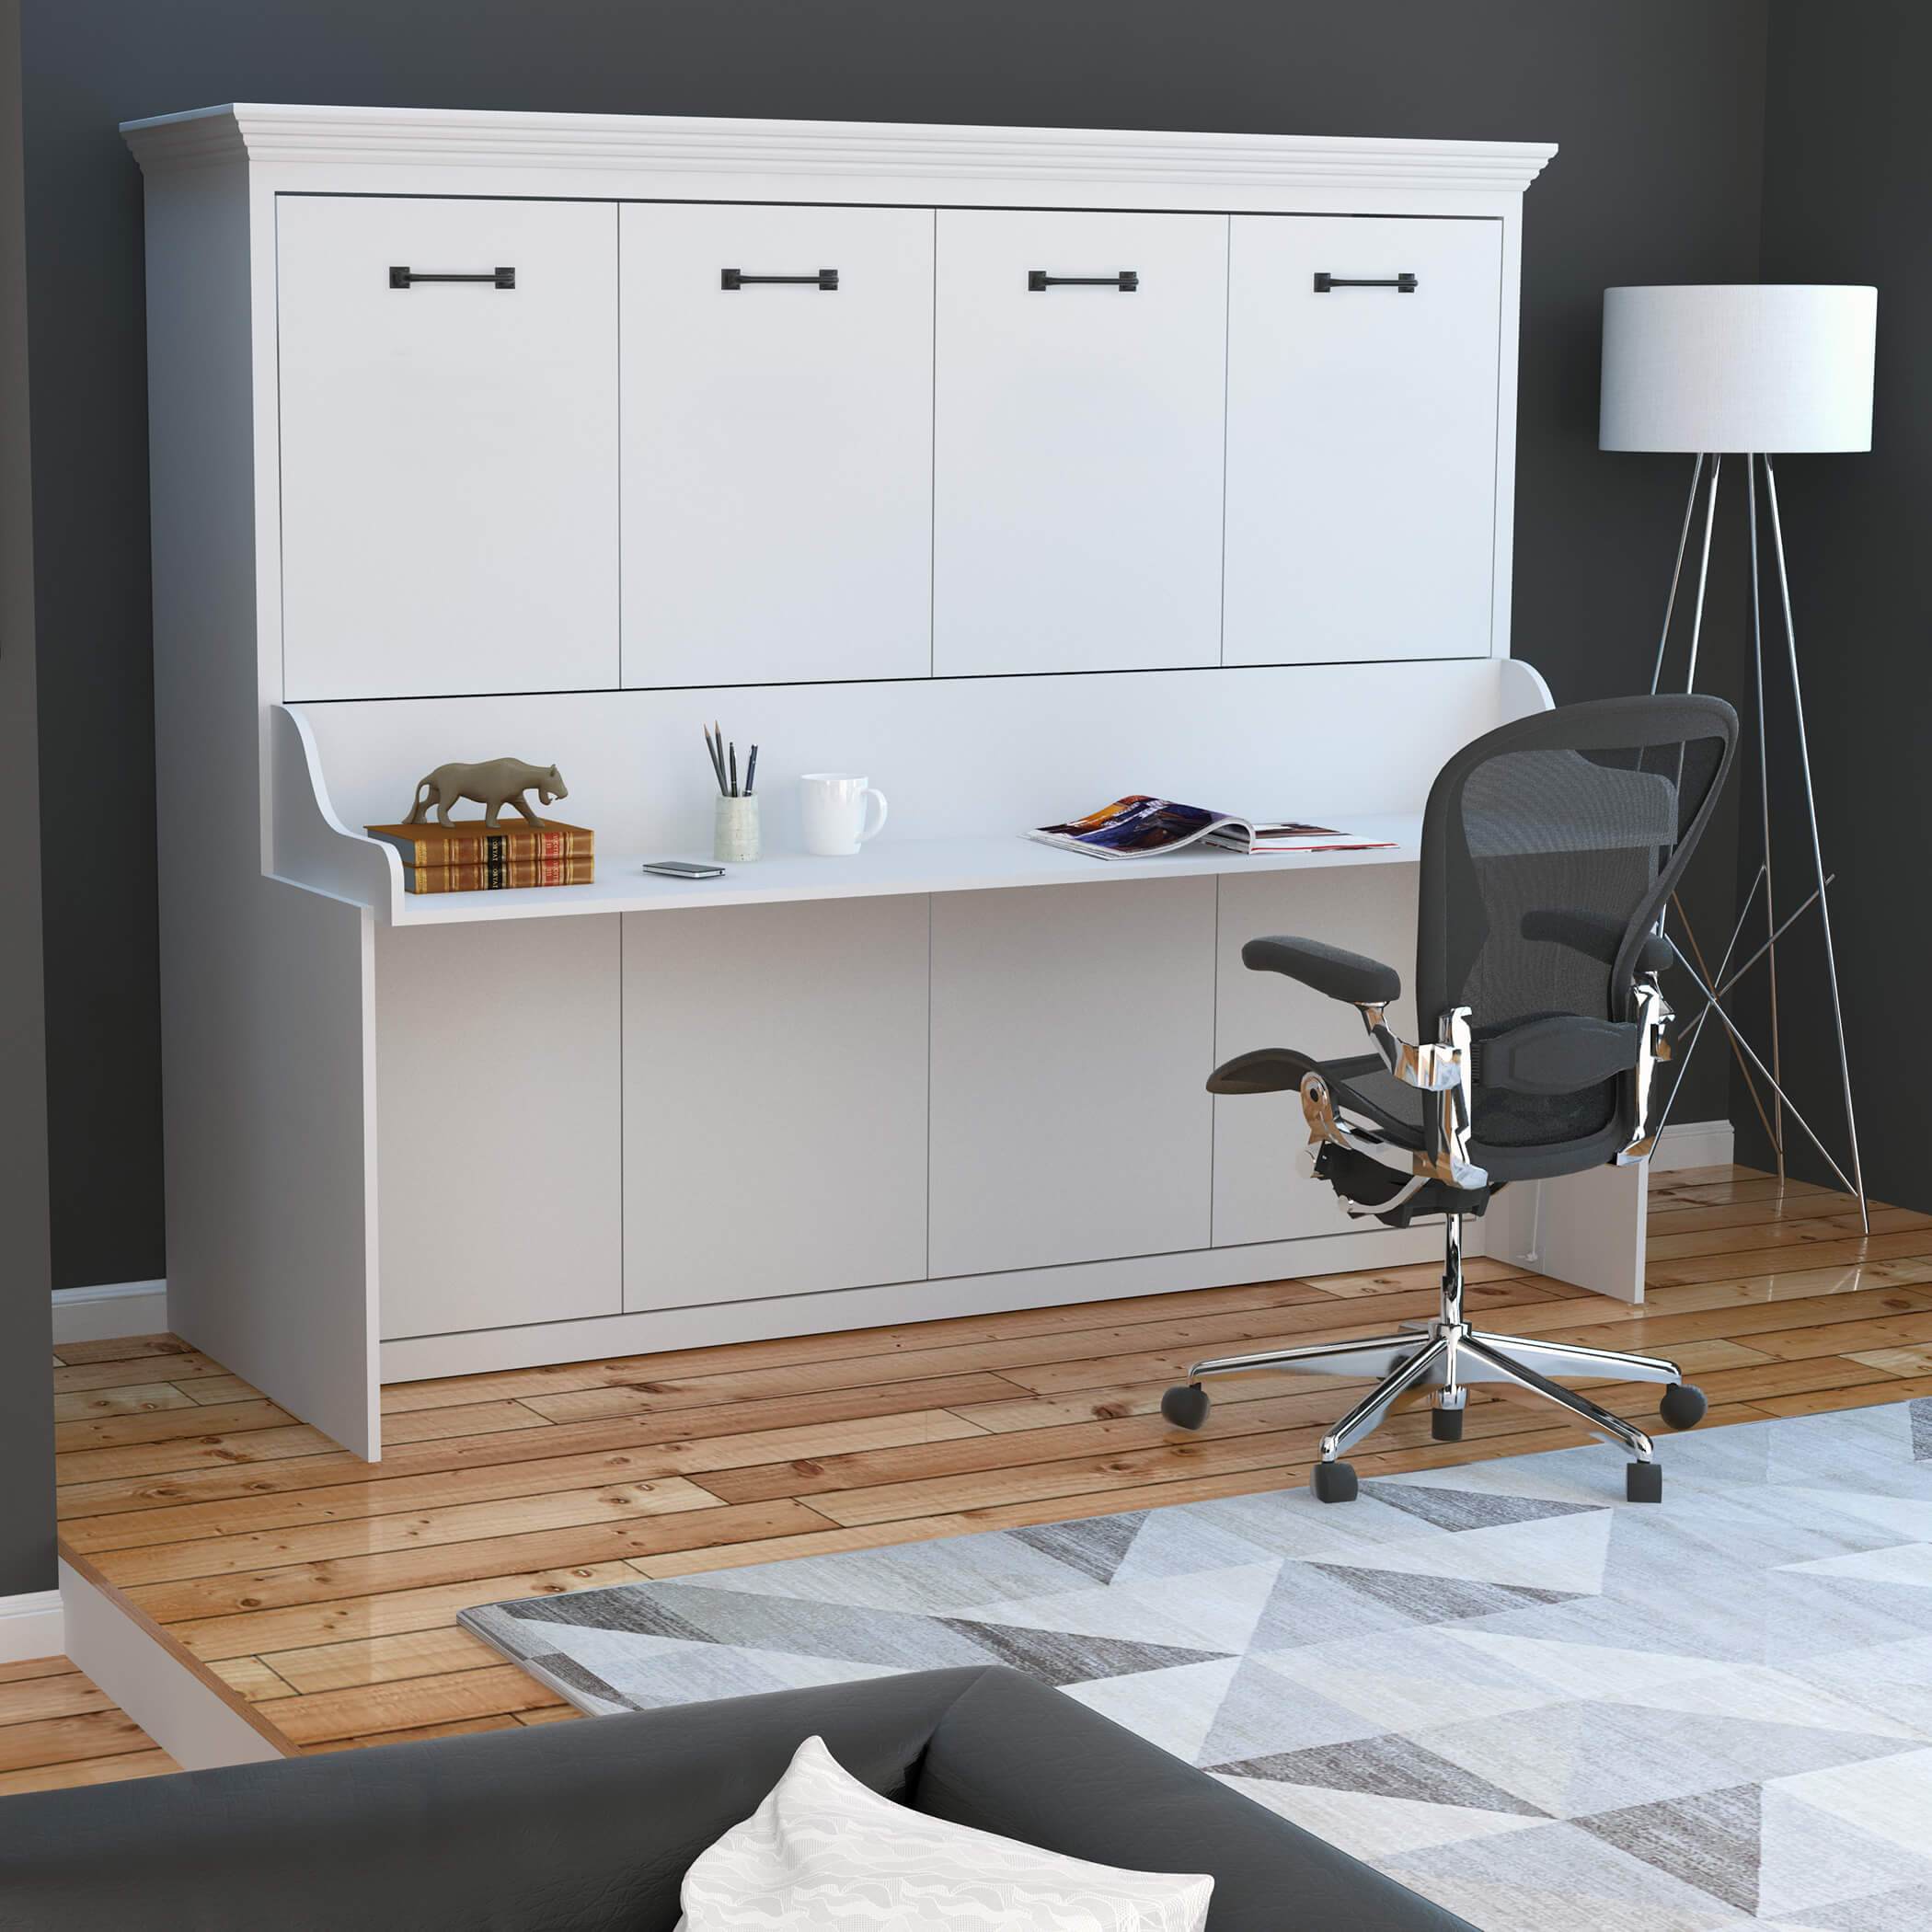 adonis horizontal murphy bed with desk